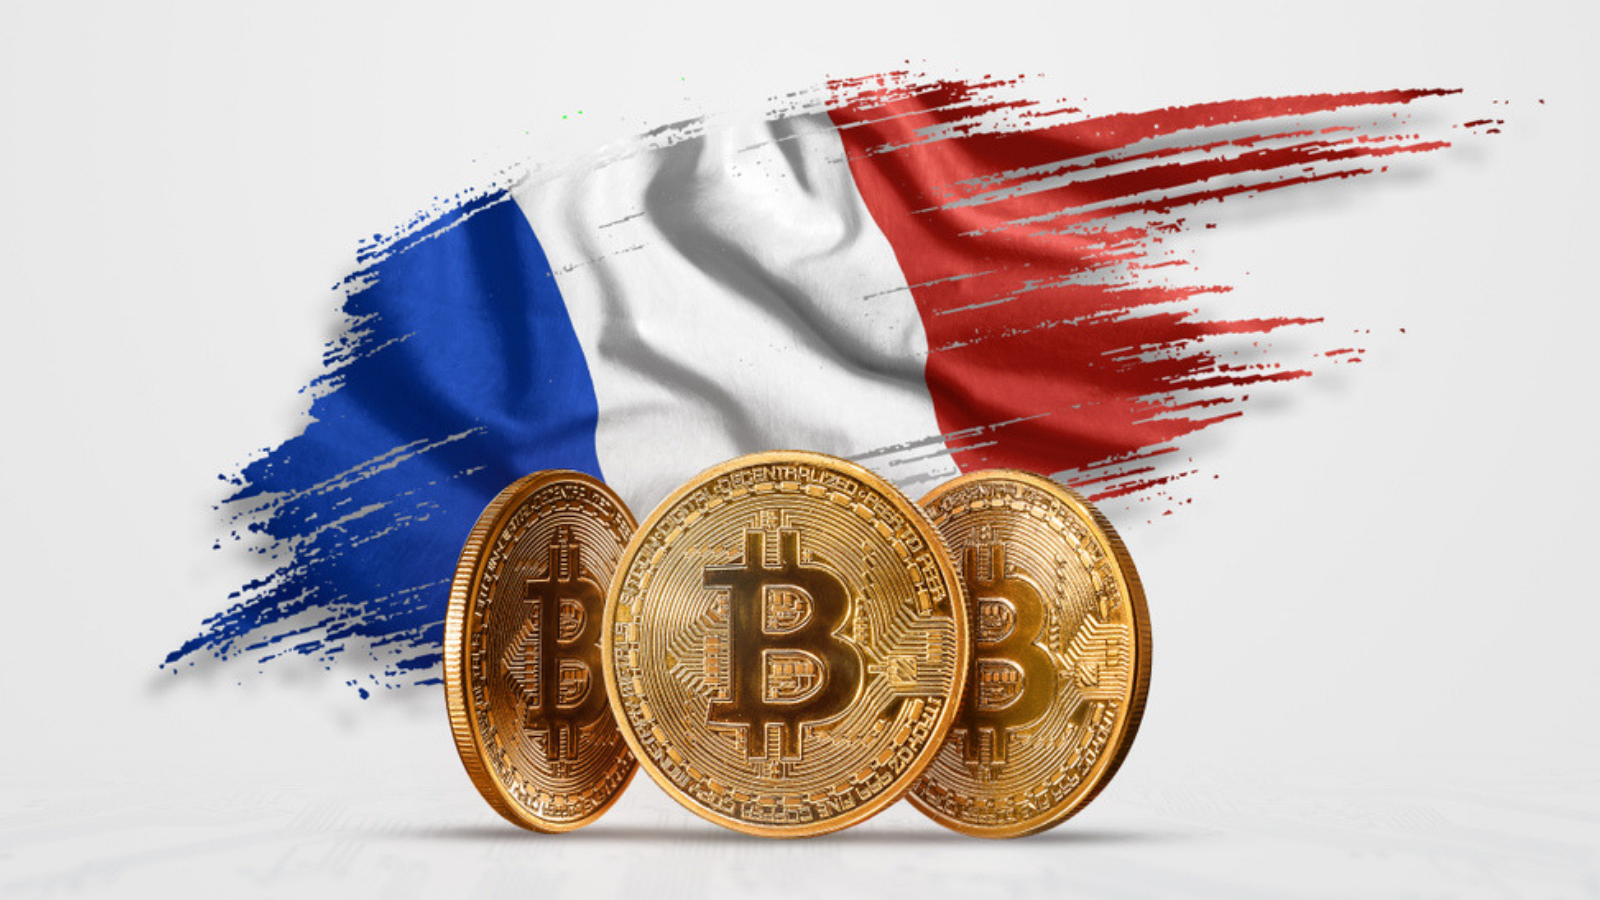 France Set to Approve First Crypto Firms Under New Rules This Month